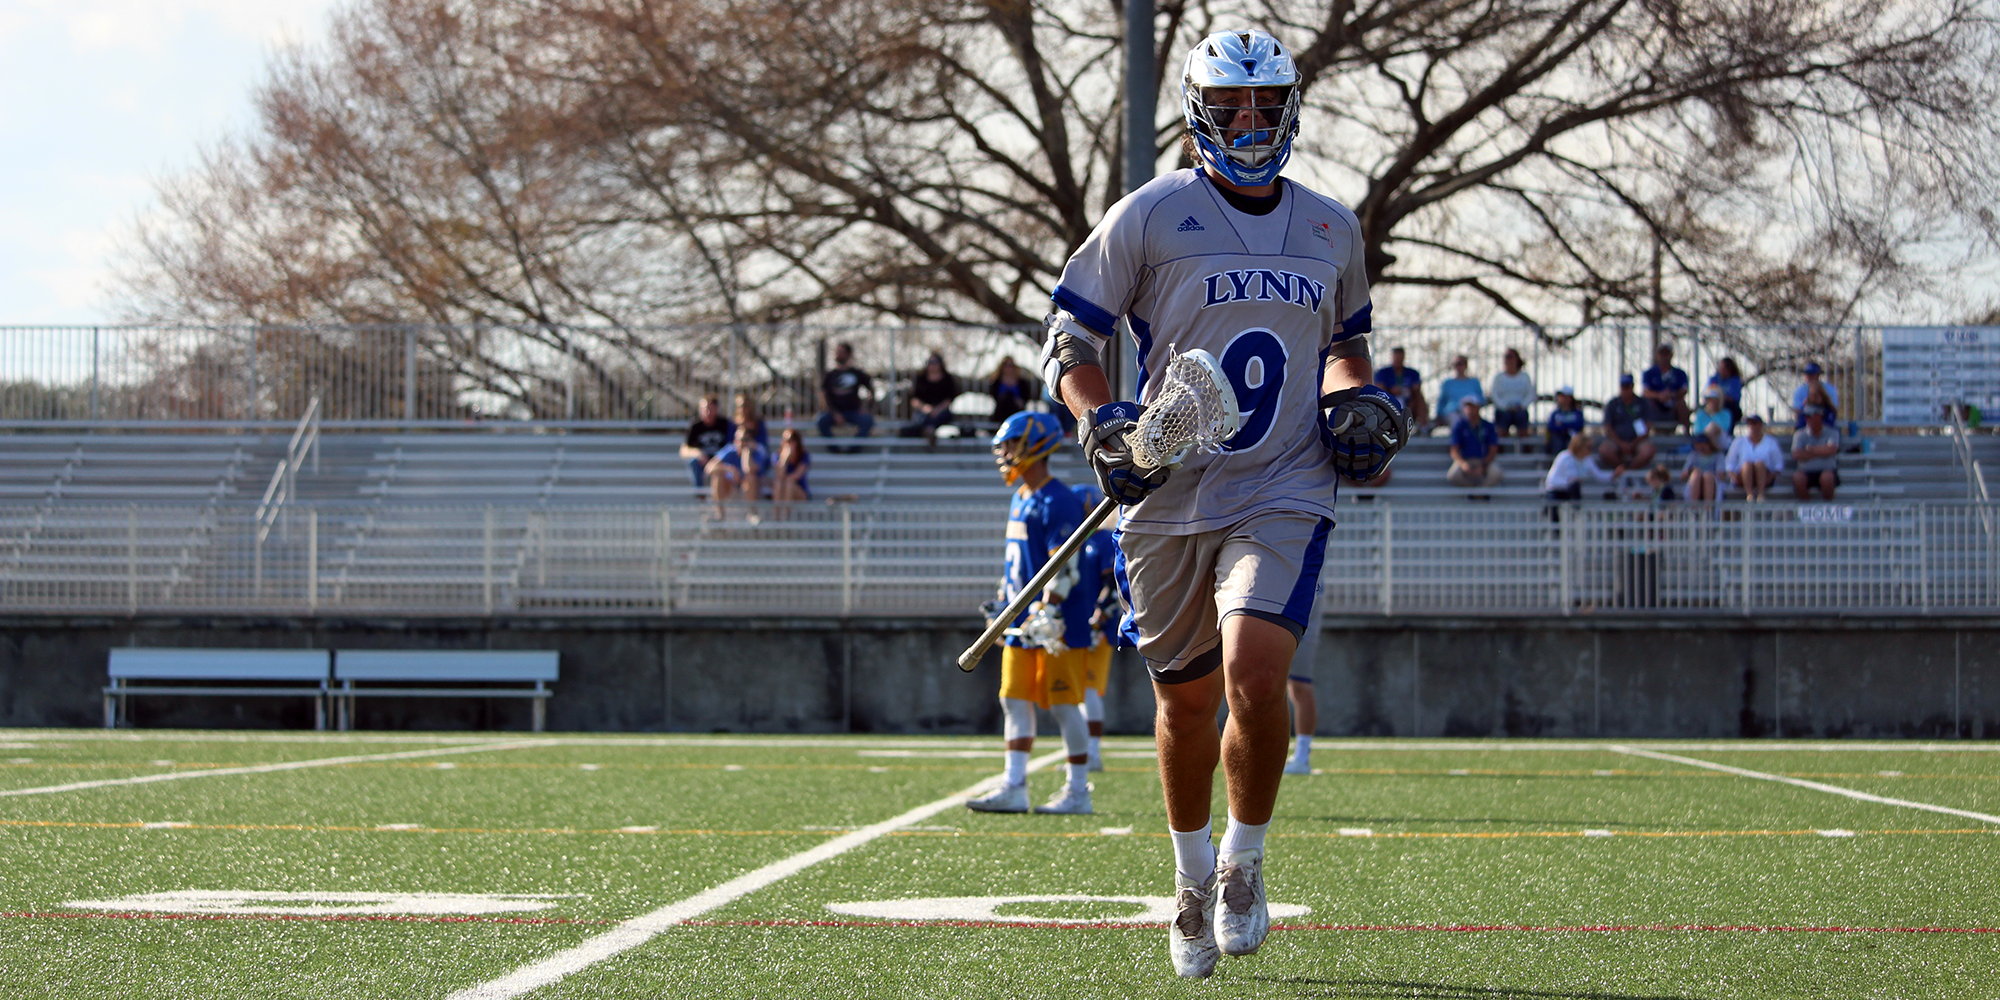 Cosenza's Fourth-Quarter Heroics Lift Lacrosse to Big Upset at No. 10 Belmont Abbey